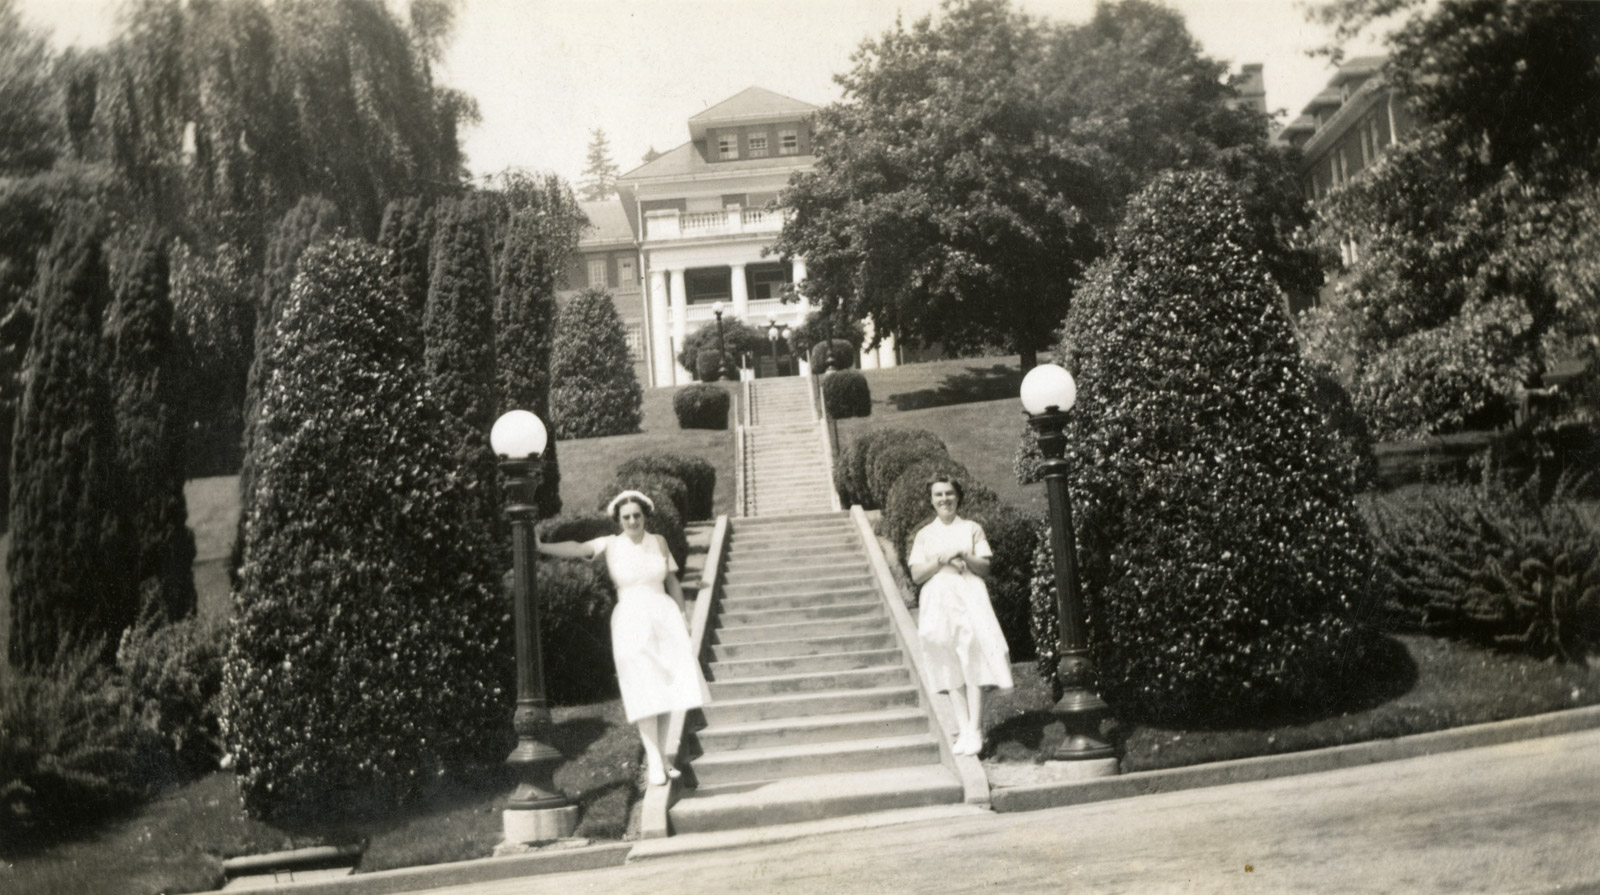 Nurses in front of the West Lawn Building at Essondal